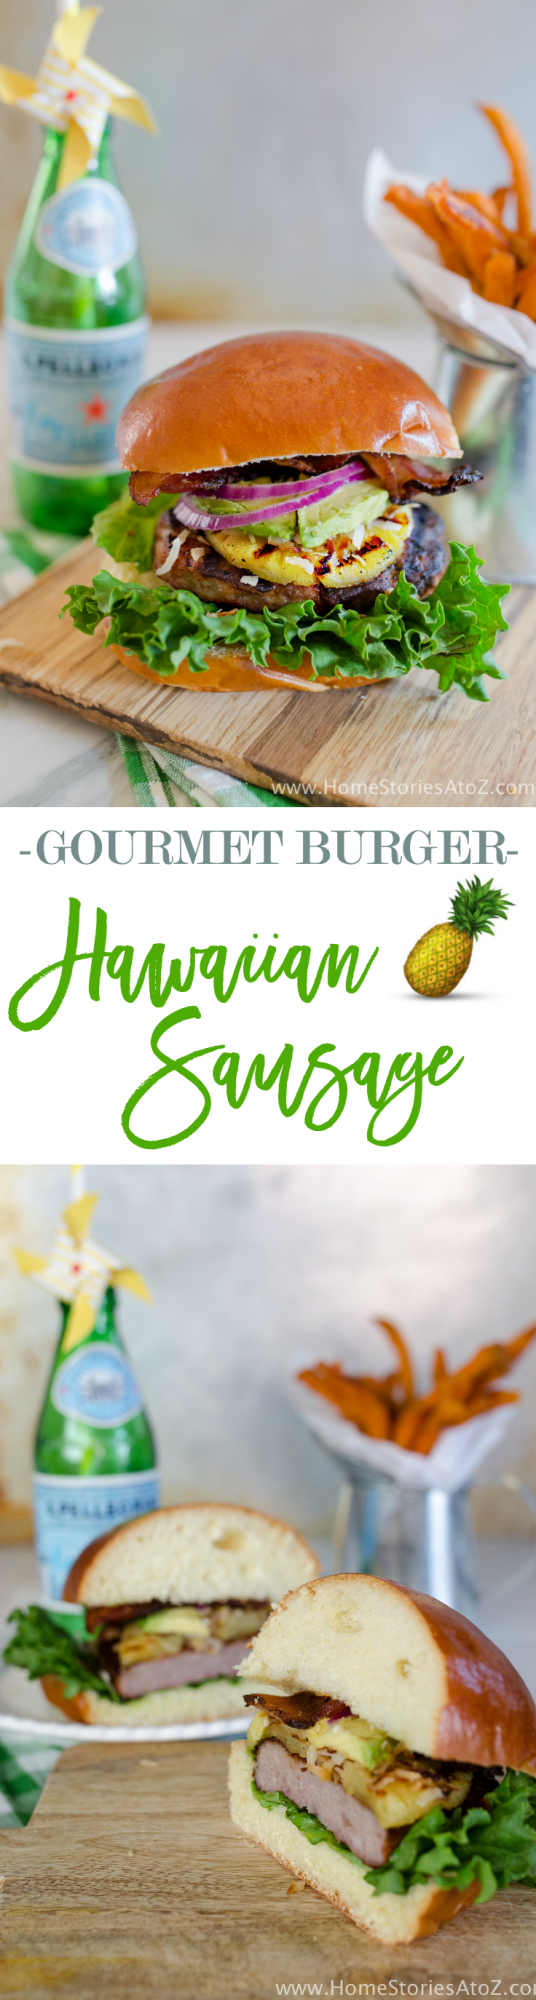 Fantastic gourmet burger recipe! Hawaiian Sausage Burger made with sausage, grilled pineapple, toasted coconut, avocado, and jalapeno bacon